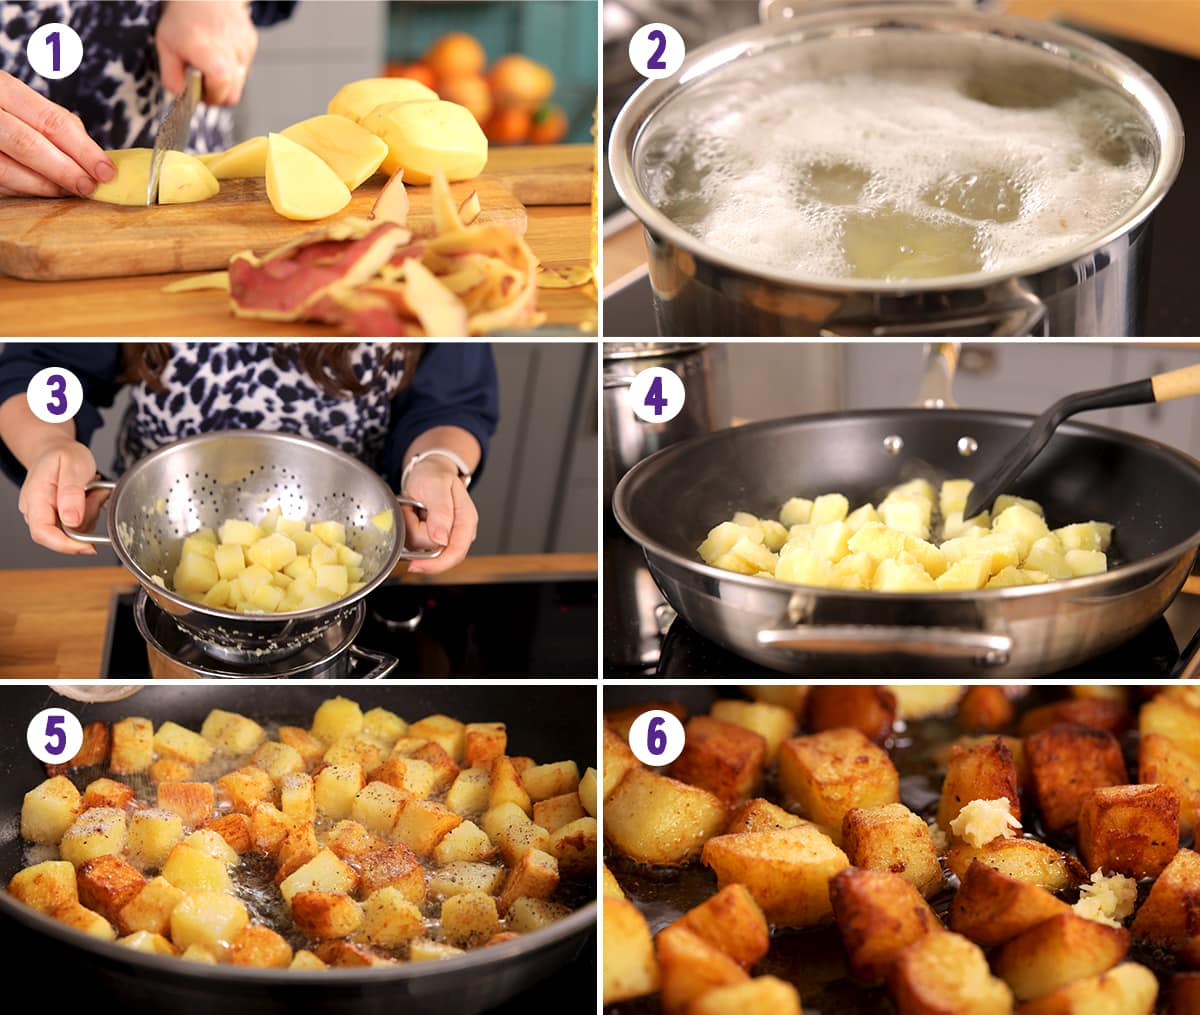 6 image collage showing how to make saute potatoes